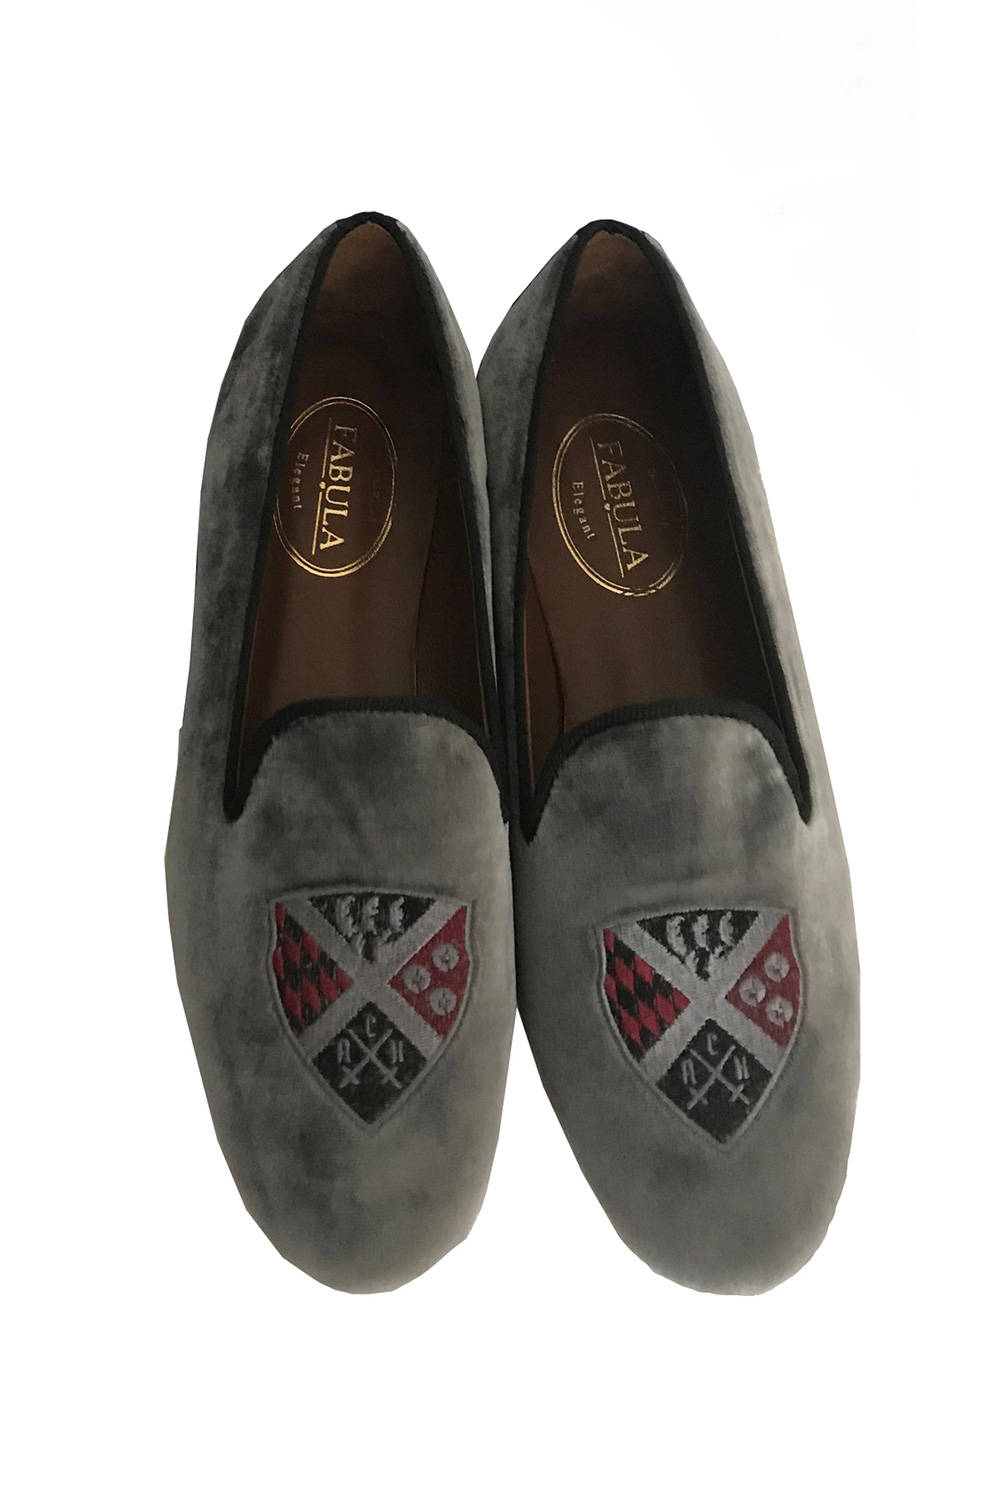 gray velvet slippers for men with a burgundy embroidery